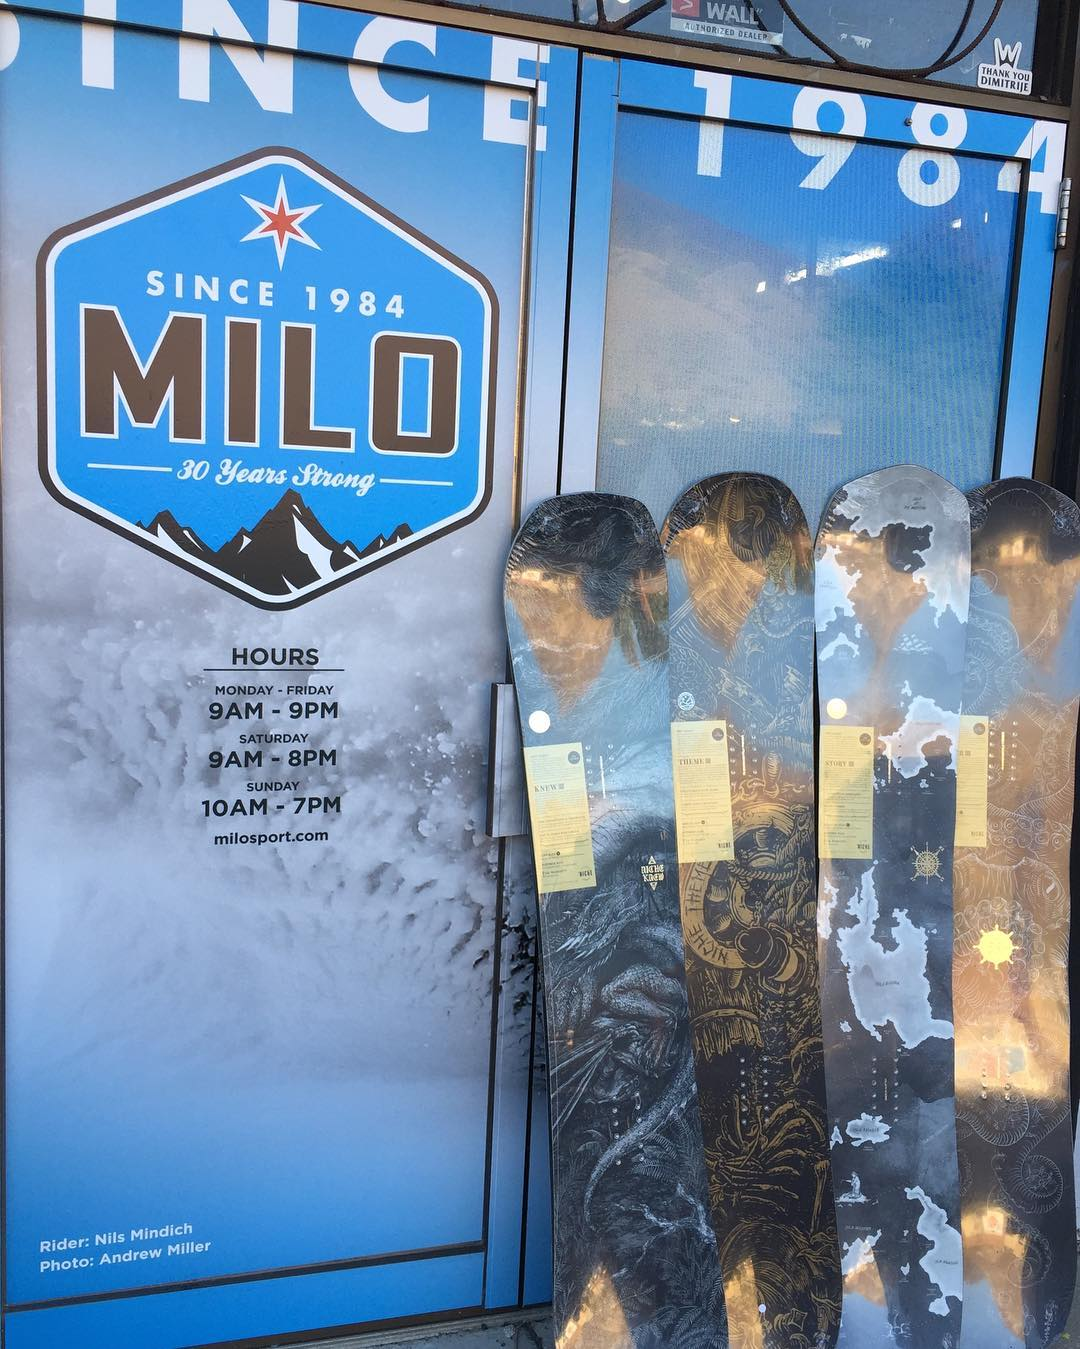 #NicheSnowboards have arrived @milosport #Since1984 selling the best products locally! Go in and check out the new boards! The hours are on the door...